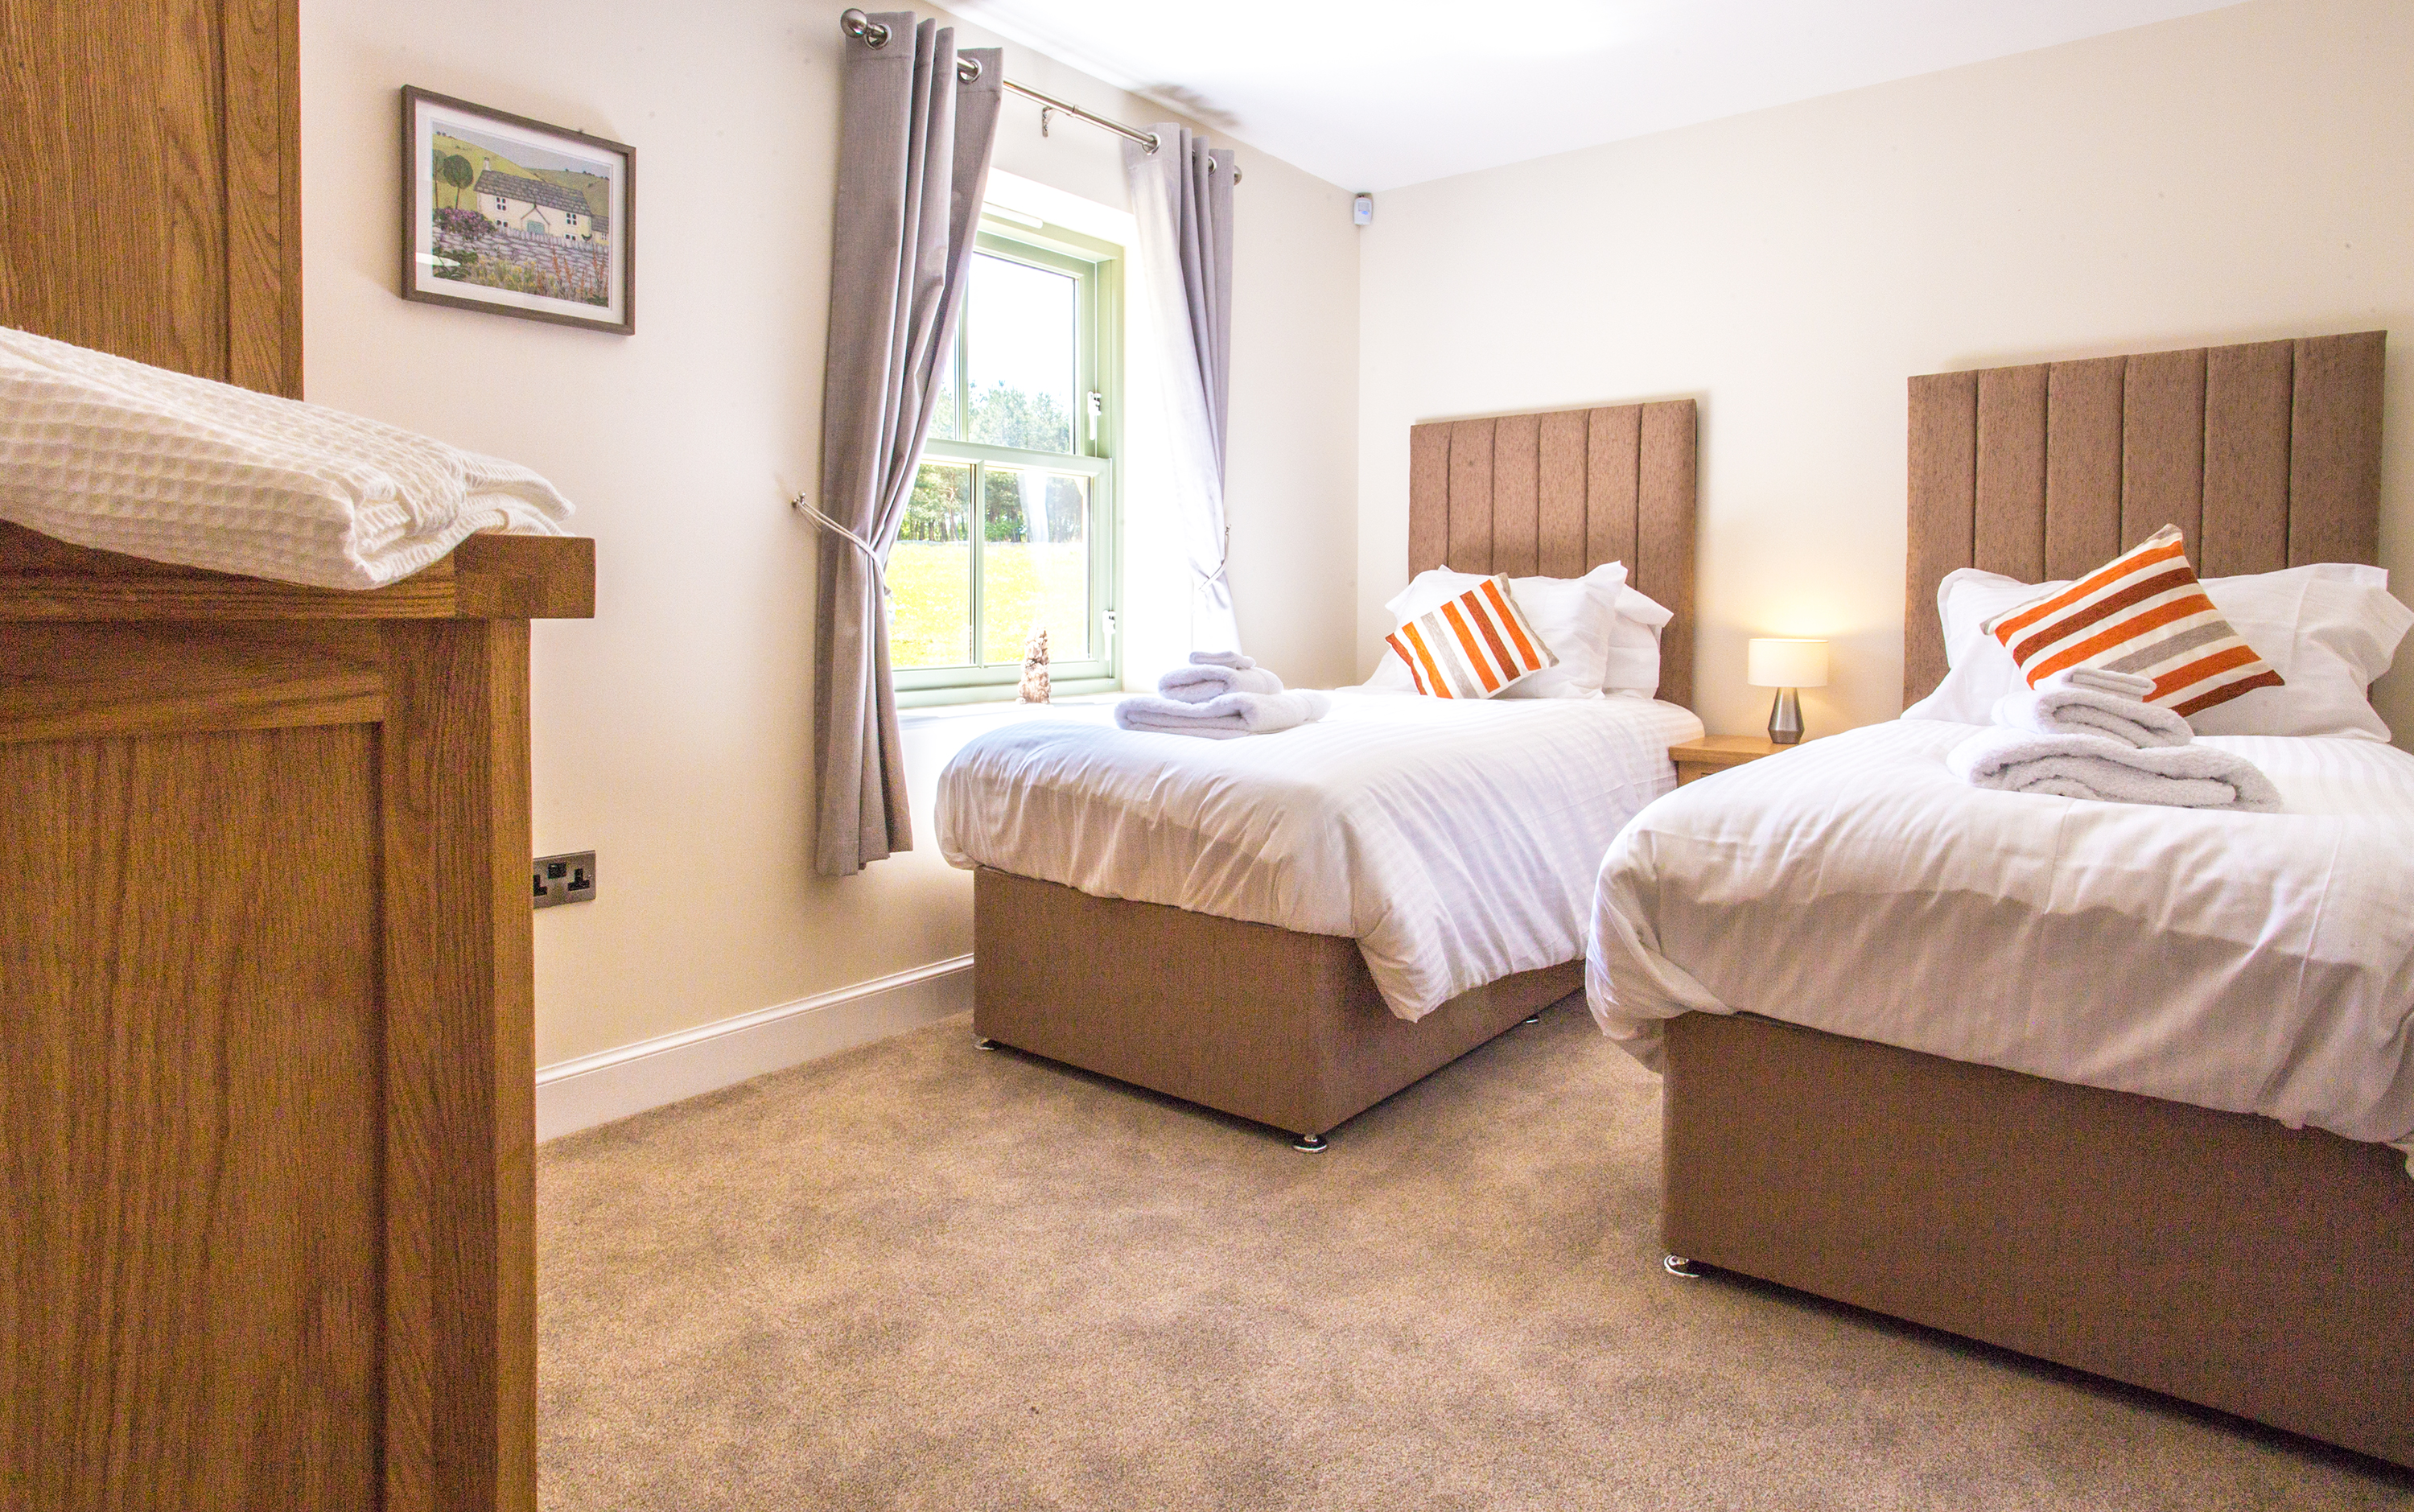 best holiday cottages for families, cottages in peaceful locations UK Northumbeland